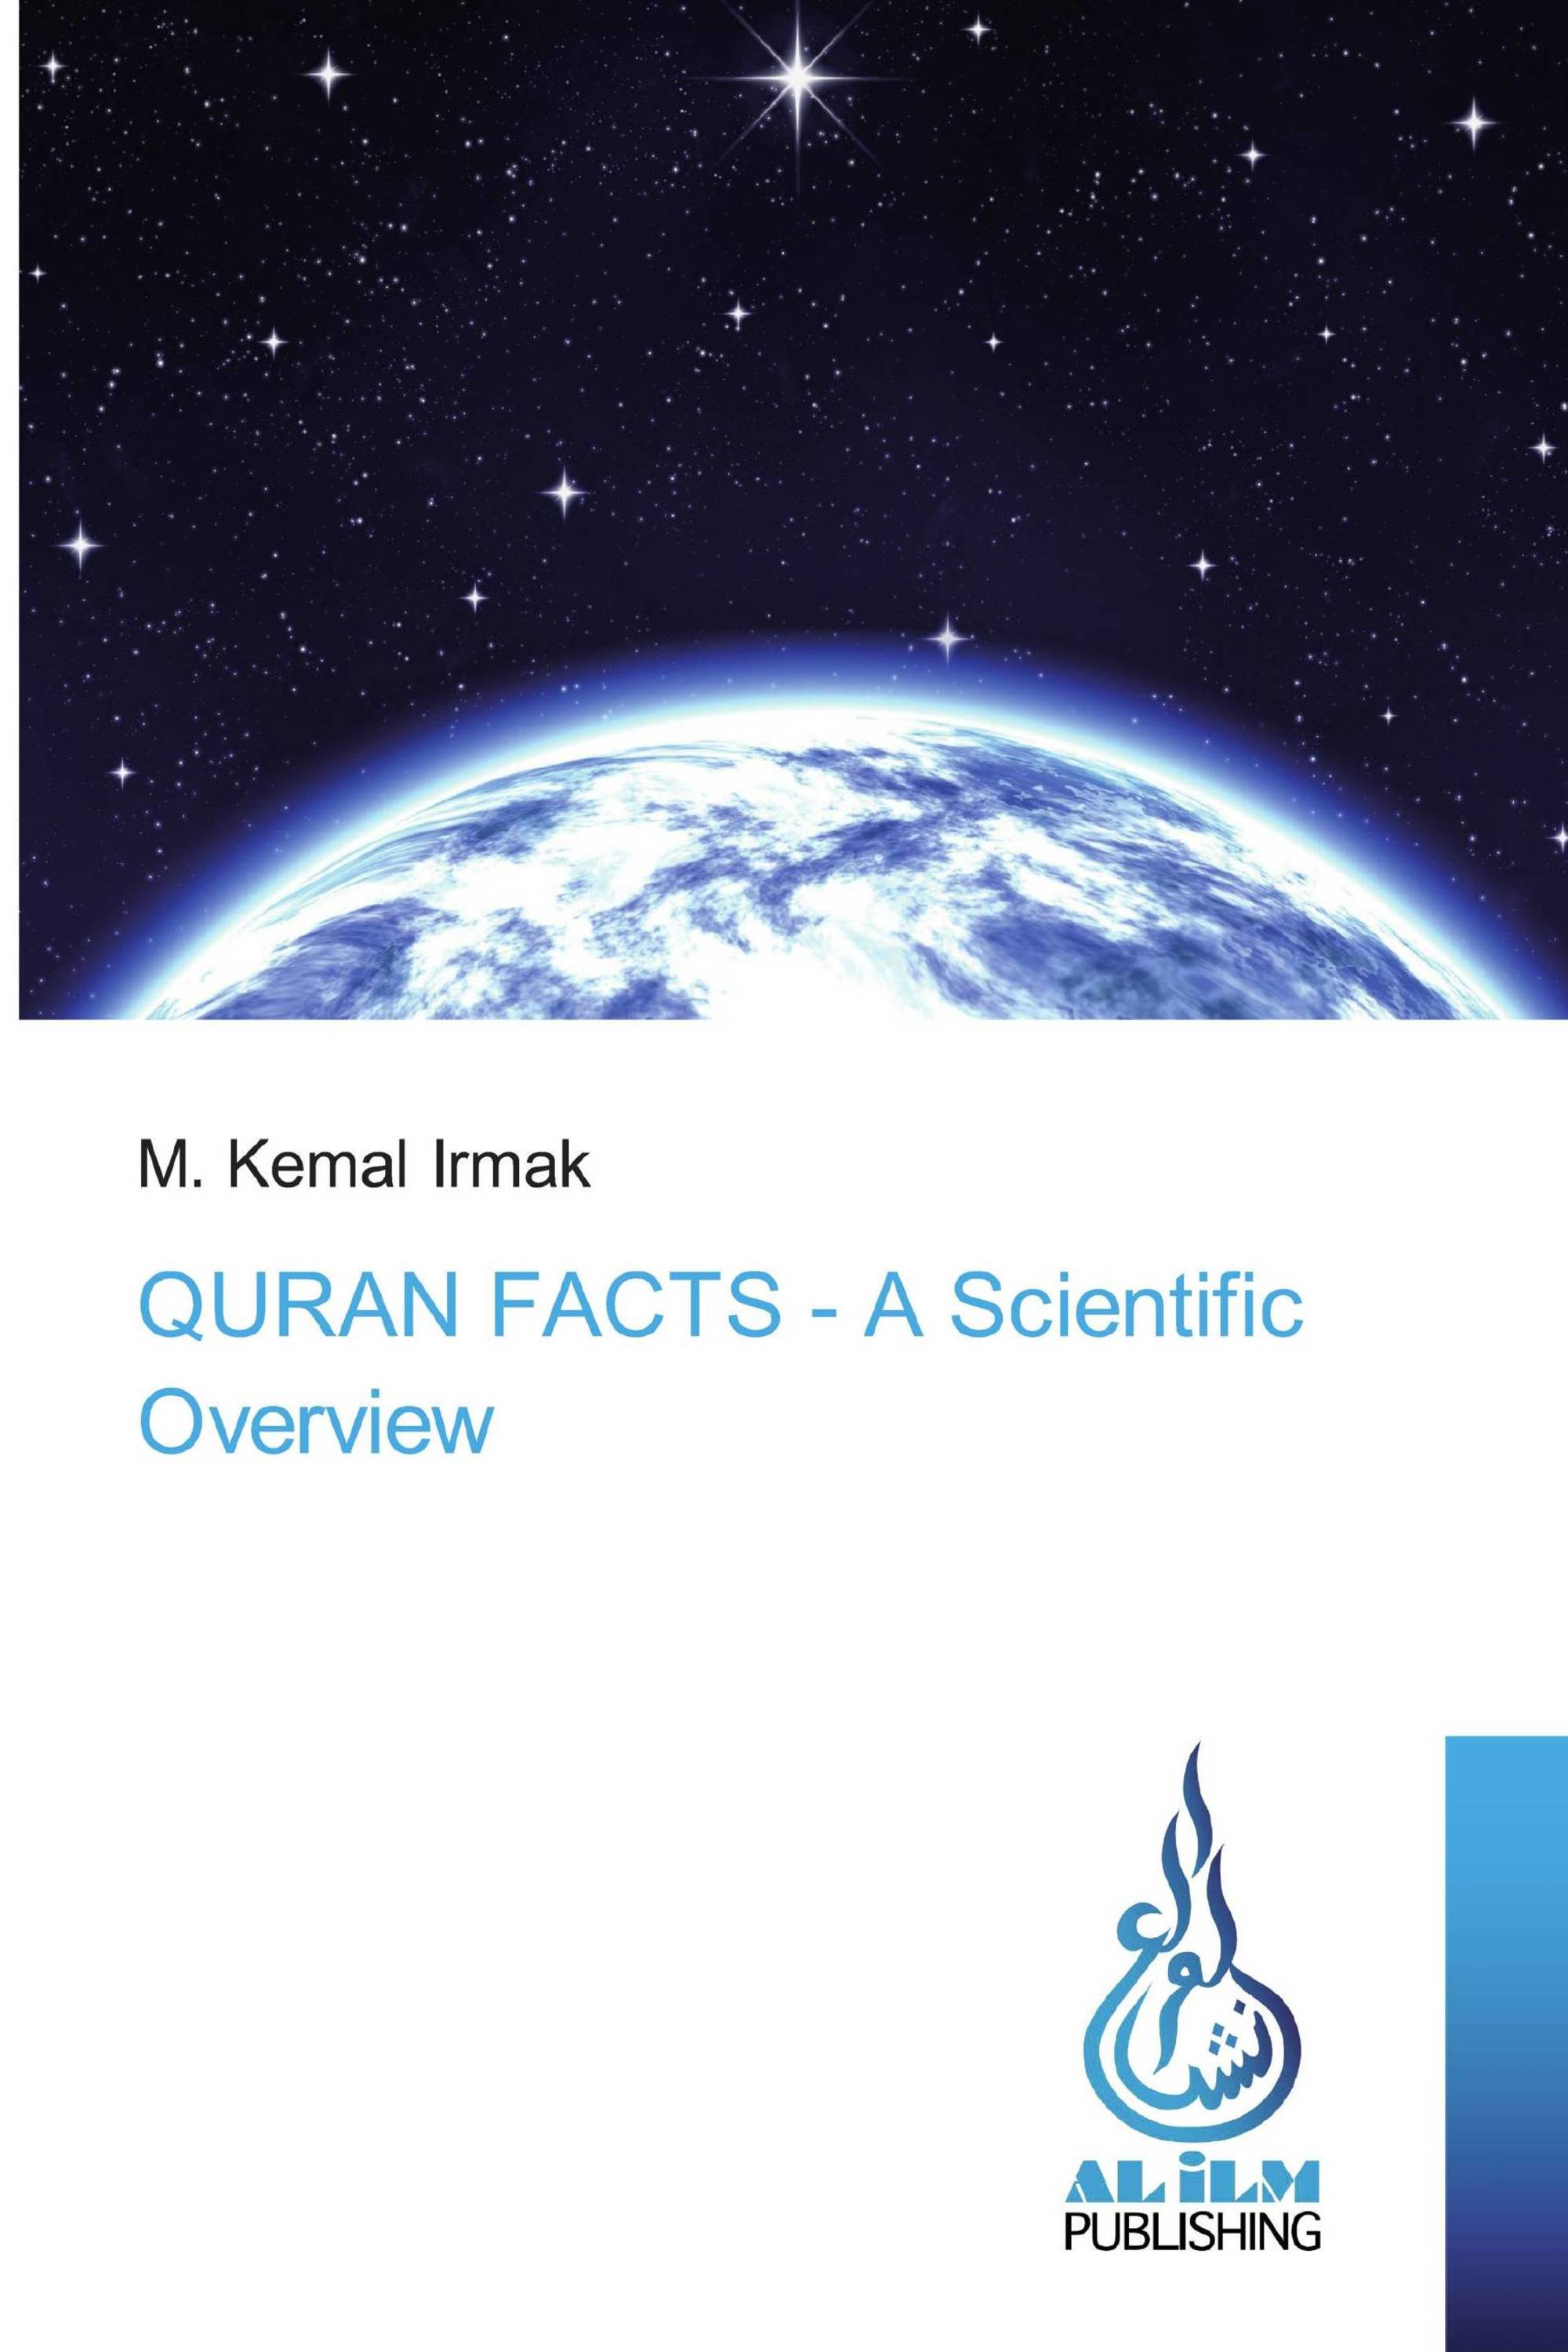 QURAN FACTS - A Scientific Overview